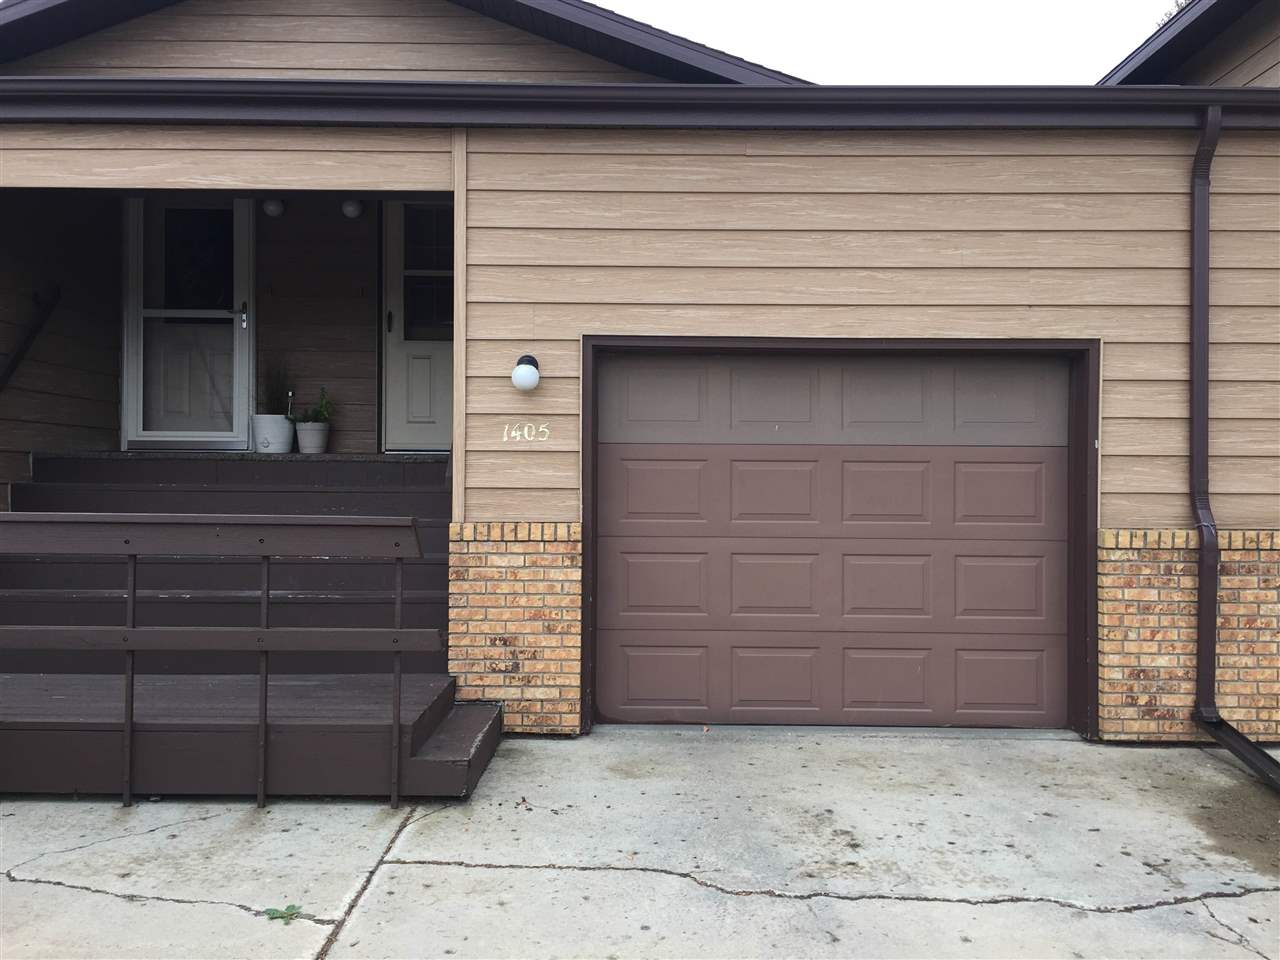 1405 SW 11 1/2 AVE, Minot, ND 58701